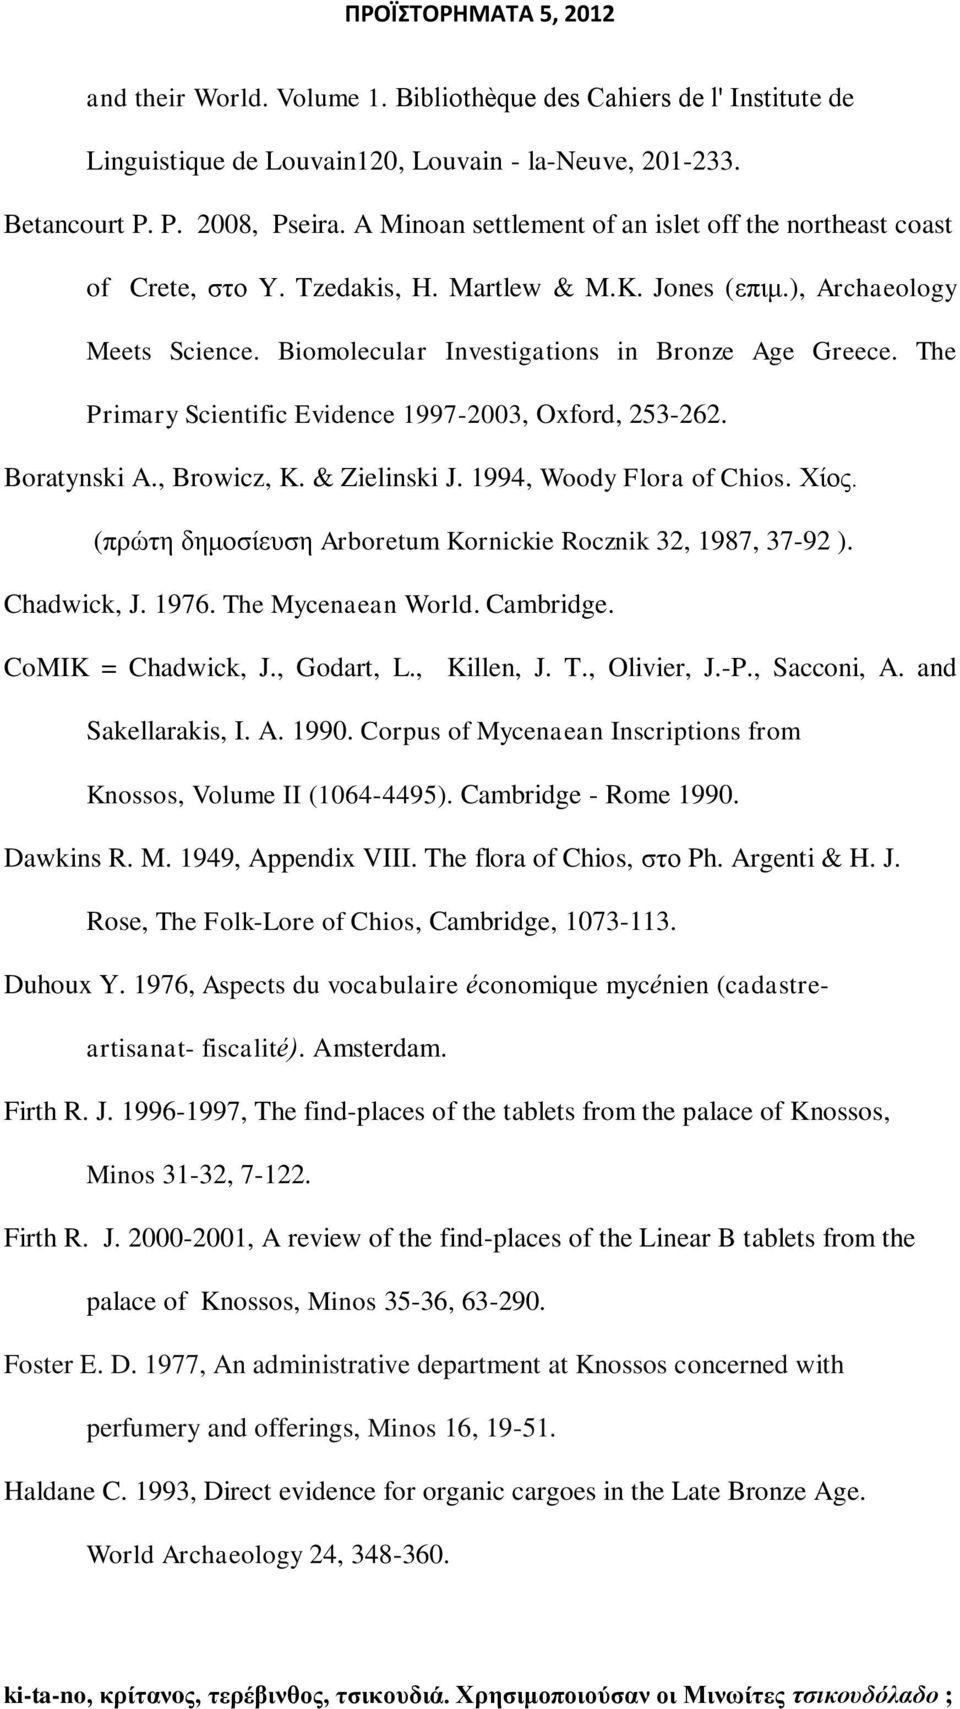 The Primary Scientific Evidence 1997-2003, Oxford, 253-262. Boratynski A., Browicz, K. & Zielinski J. 1994, Woody Flora of Chios. Υίνο. (πξψηε δεκνζίεπζε Arboretum Kornickie Rocznik 32, 1987, 37-92 ).